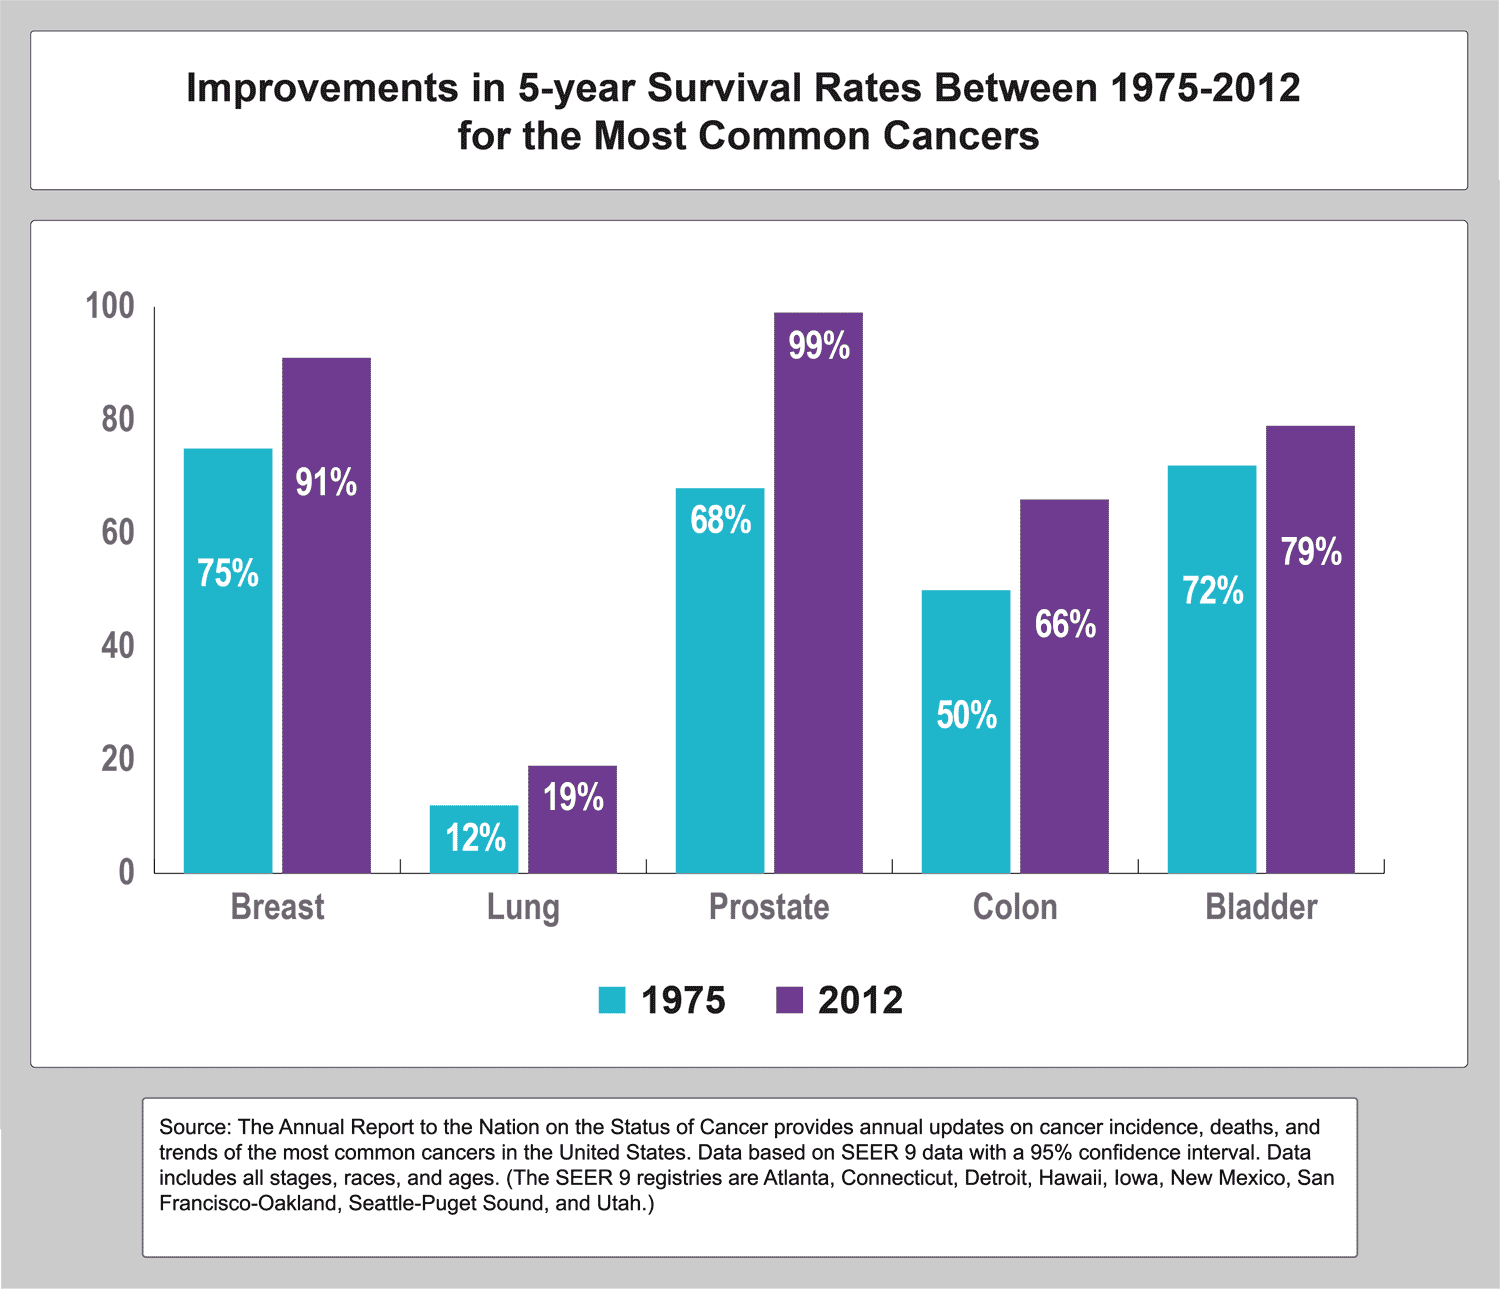 Improvements in 5-year Survival Rates Between 1975-2012 for the Most Common Cancers. Source: The Annual Report to the Nation on the Status of Cancer provides annual updates on cancer incidence, deaths, and trends of the most common cancers in the United States. Data based on SEER 9 data with a 95% confidence inverval. Data includes all stages, race and ages.